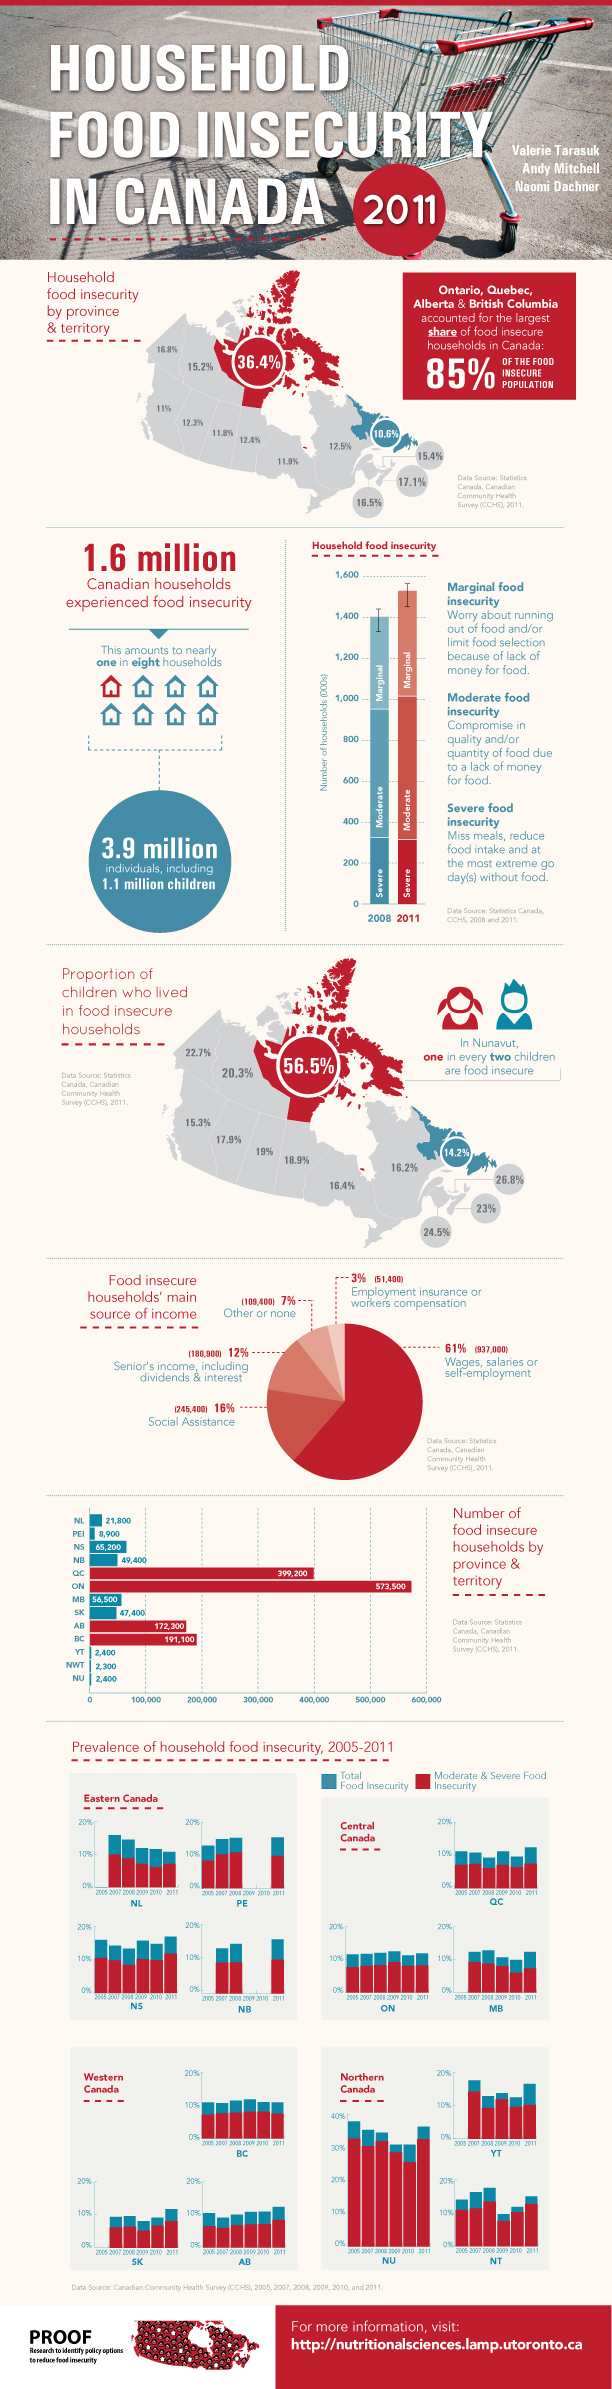 Food Insecurity 2011 Infographic